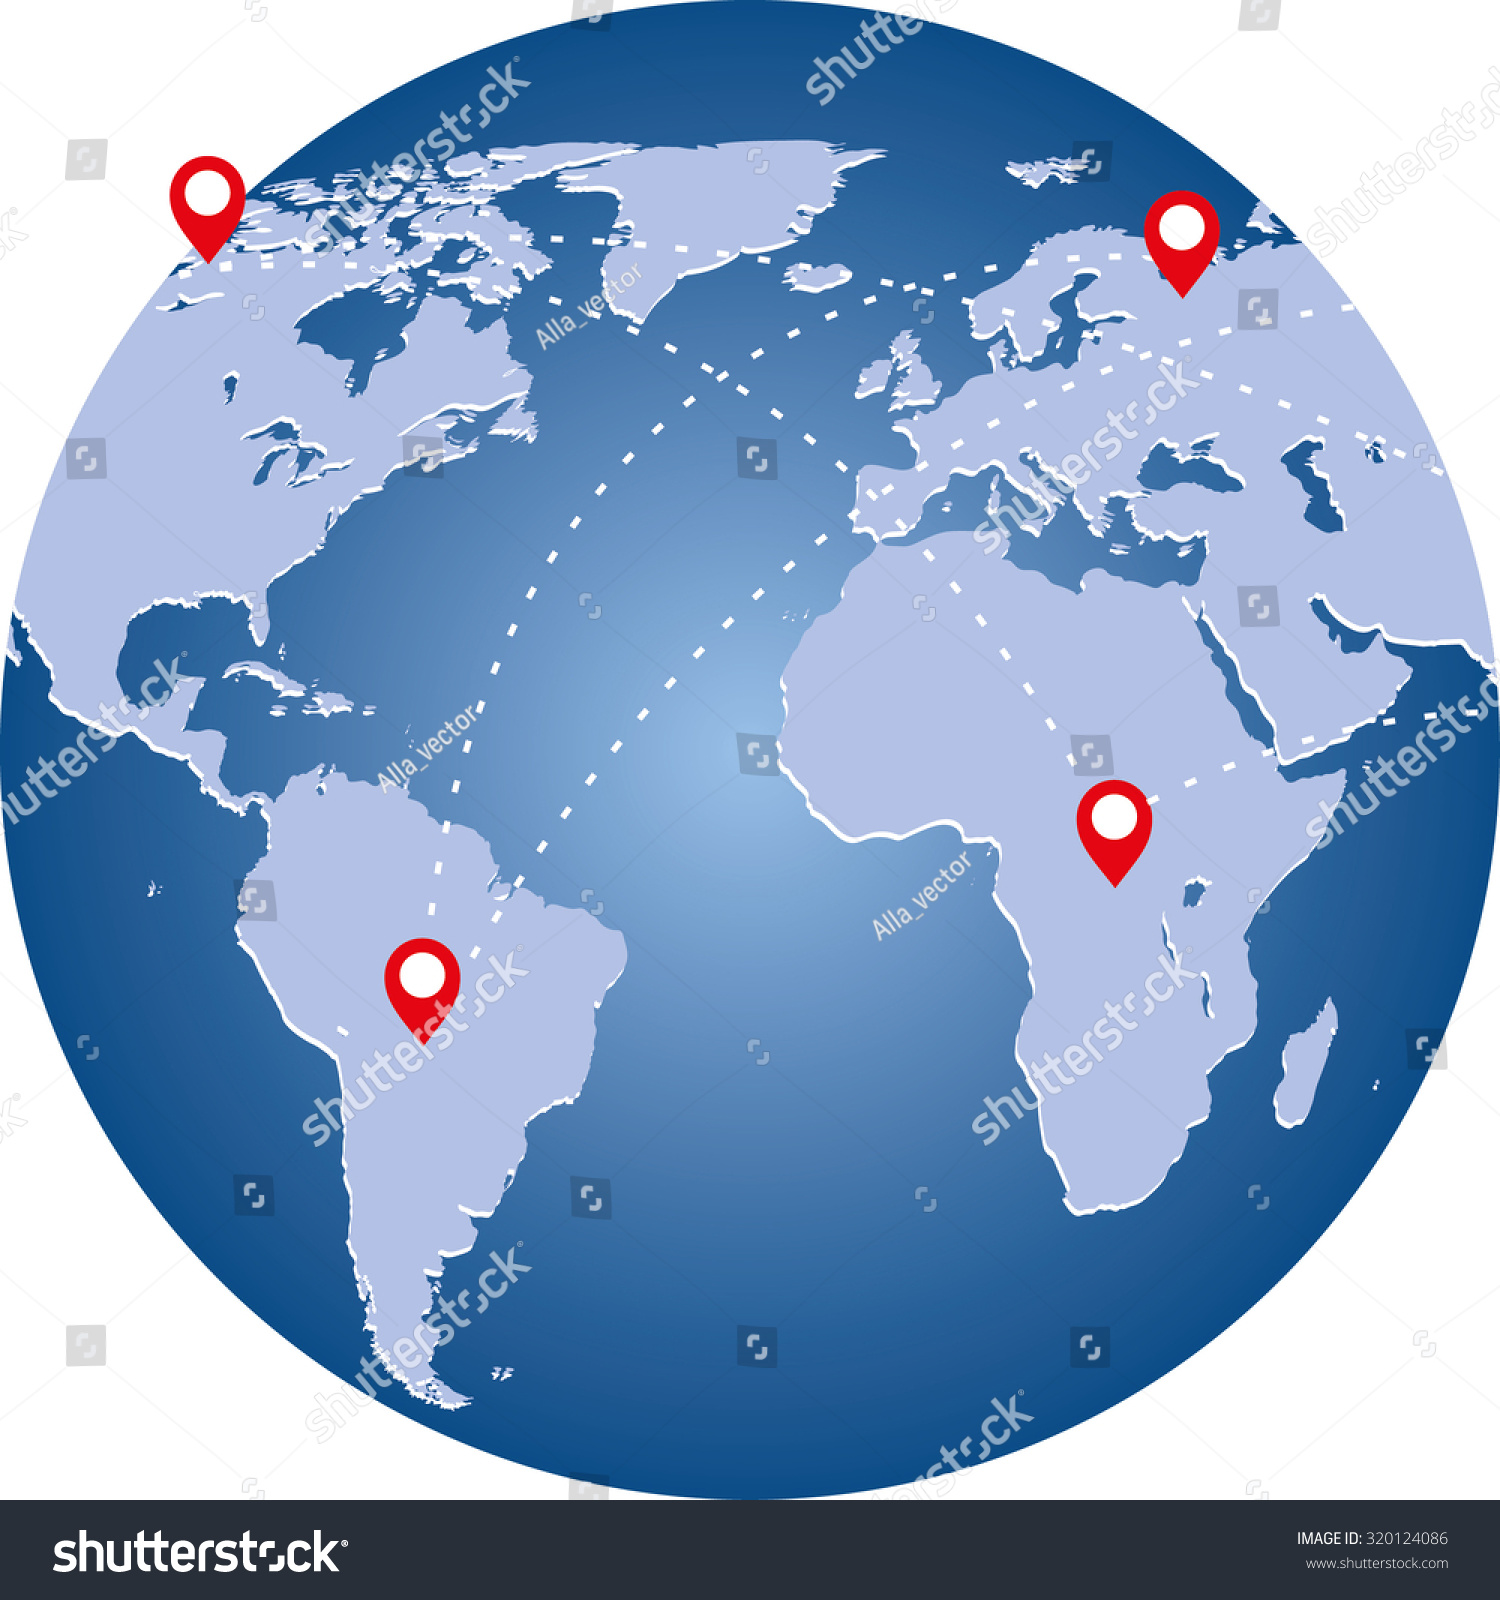 Planet image world map connection lines stock vector 320124086 planet image with world map and connection lines technology image of globe gumiabroncs Choice Image